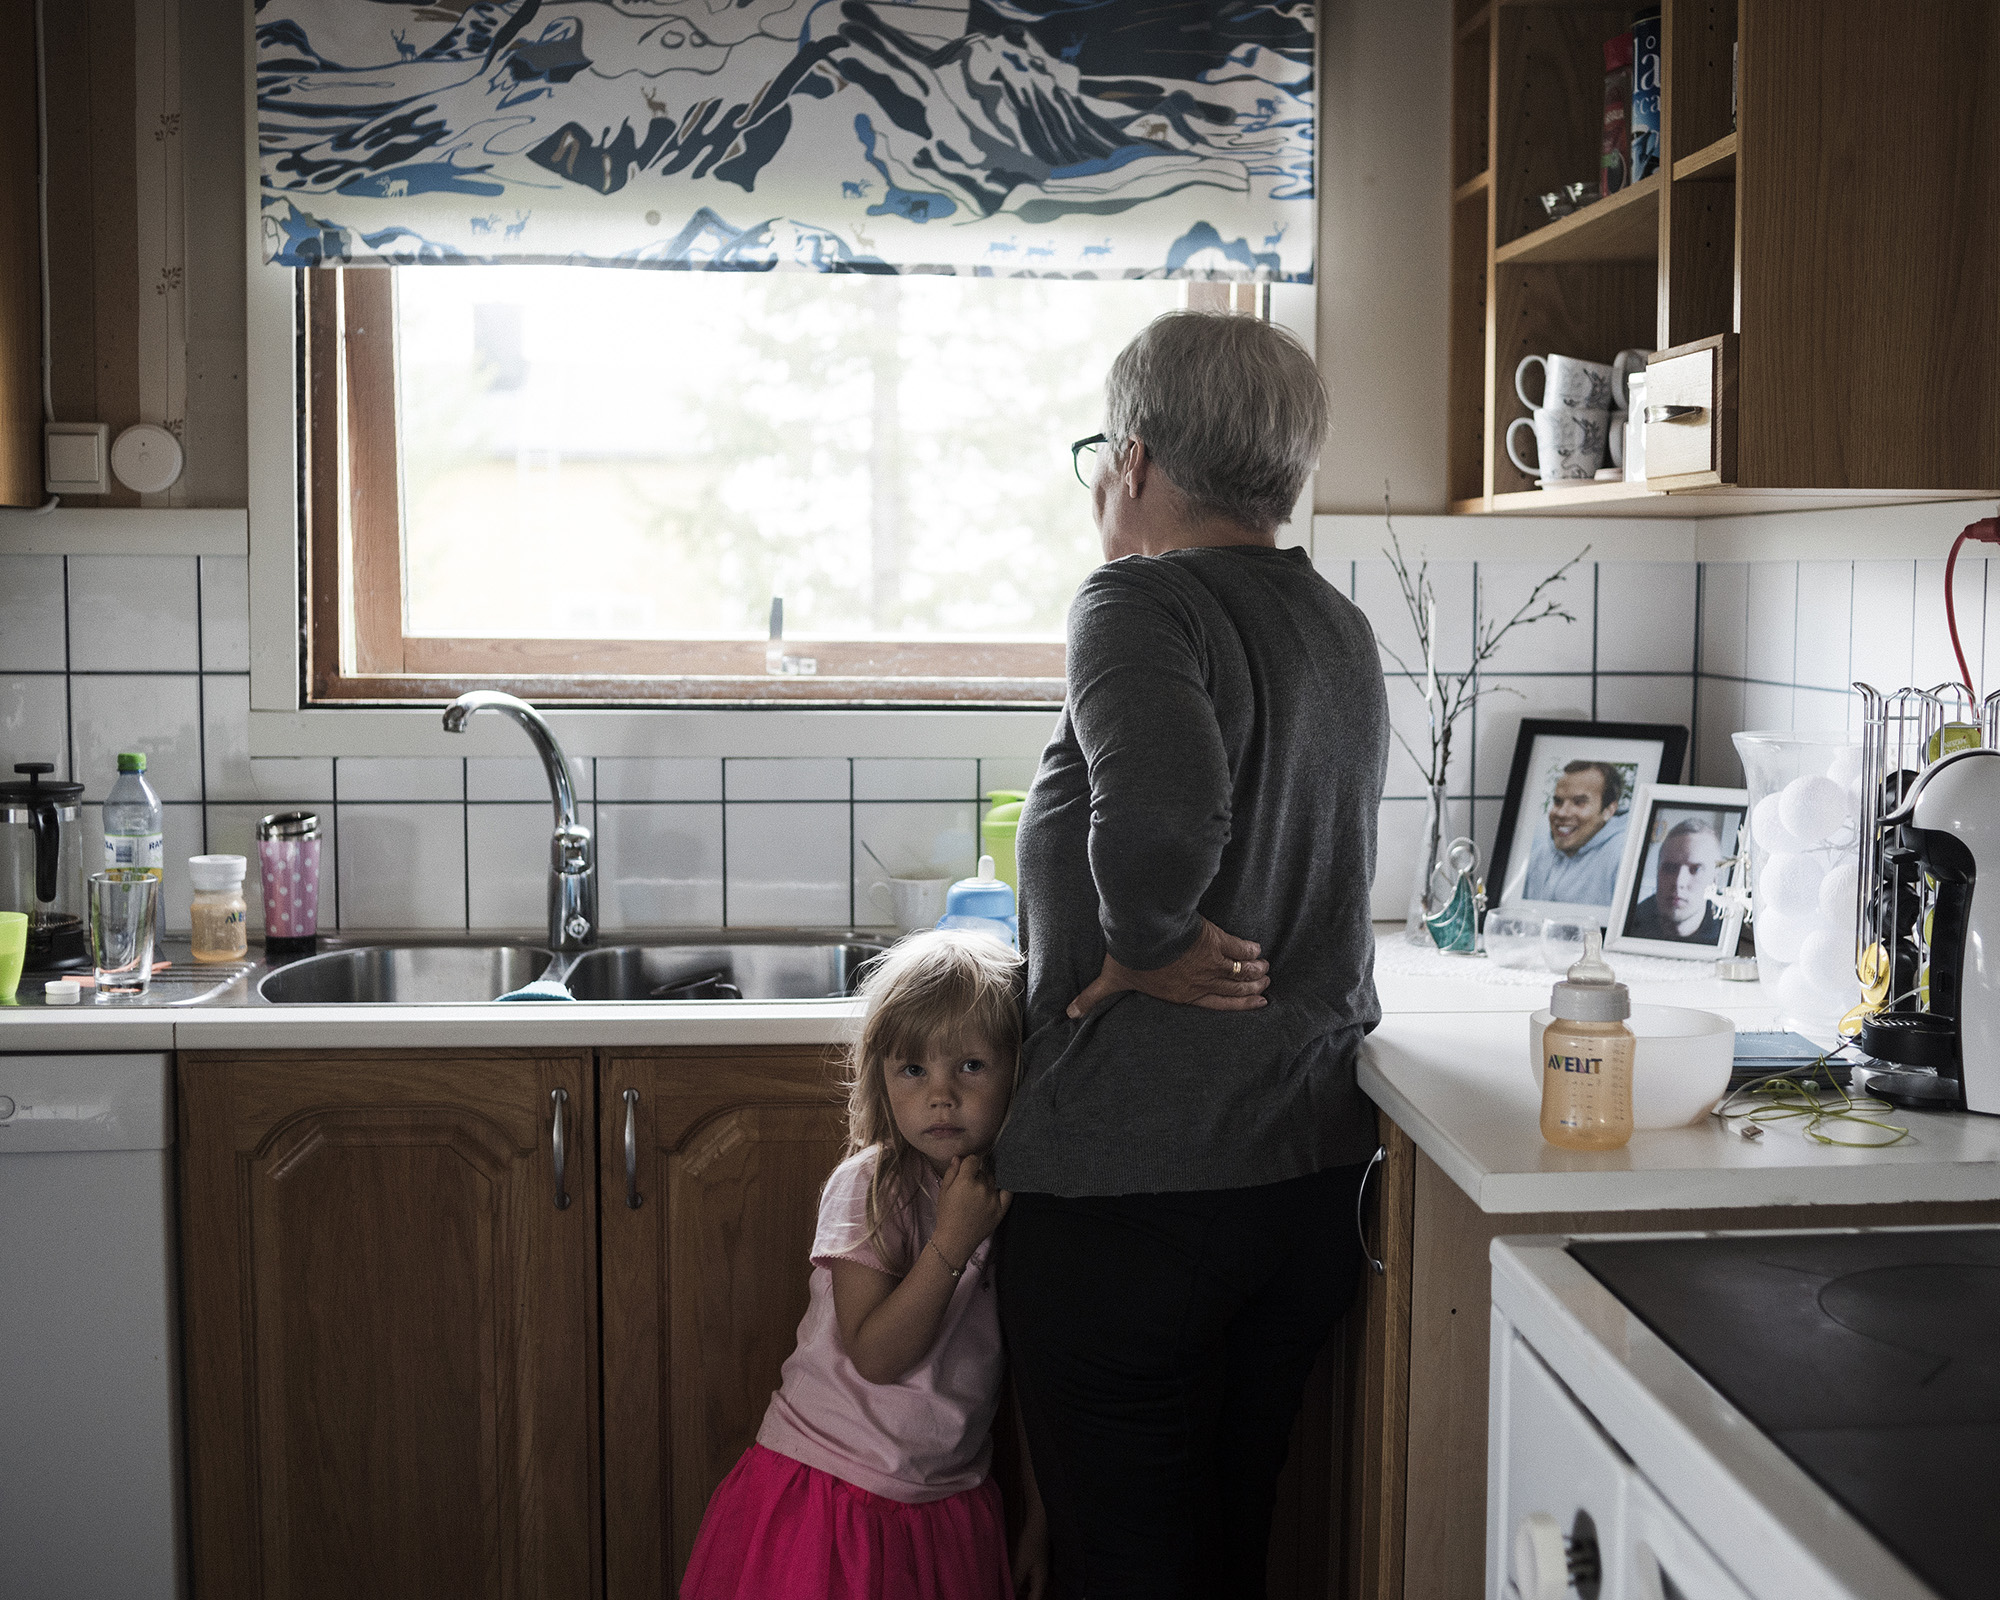 """Randi Marainen and her granddaughter in the kitchen of their home in Nedre Soppero, Sweden.  Randi speaks openly about the taboo topic of seeking mental health services after her sons committed suicide. """"It's very important that we are 100 percent open with everything that happened,"""" she said.  (Camilla Andersen/GroundTruth)"""